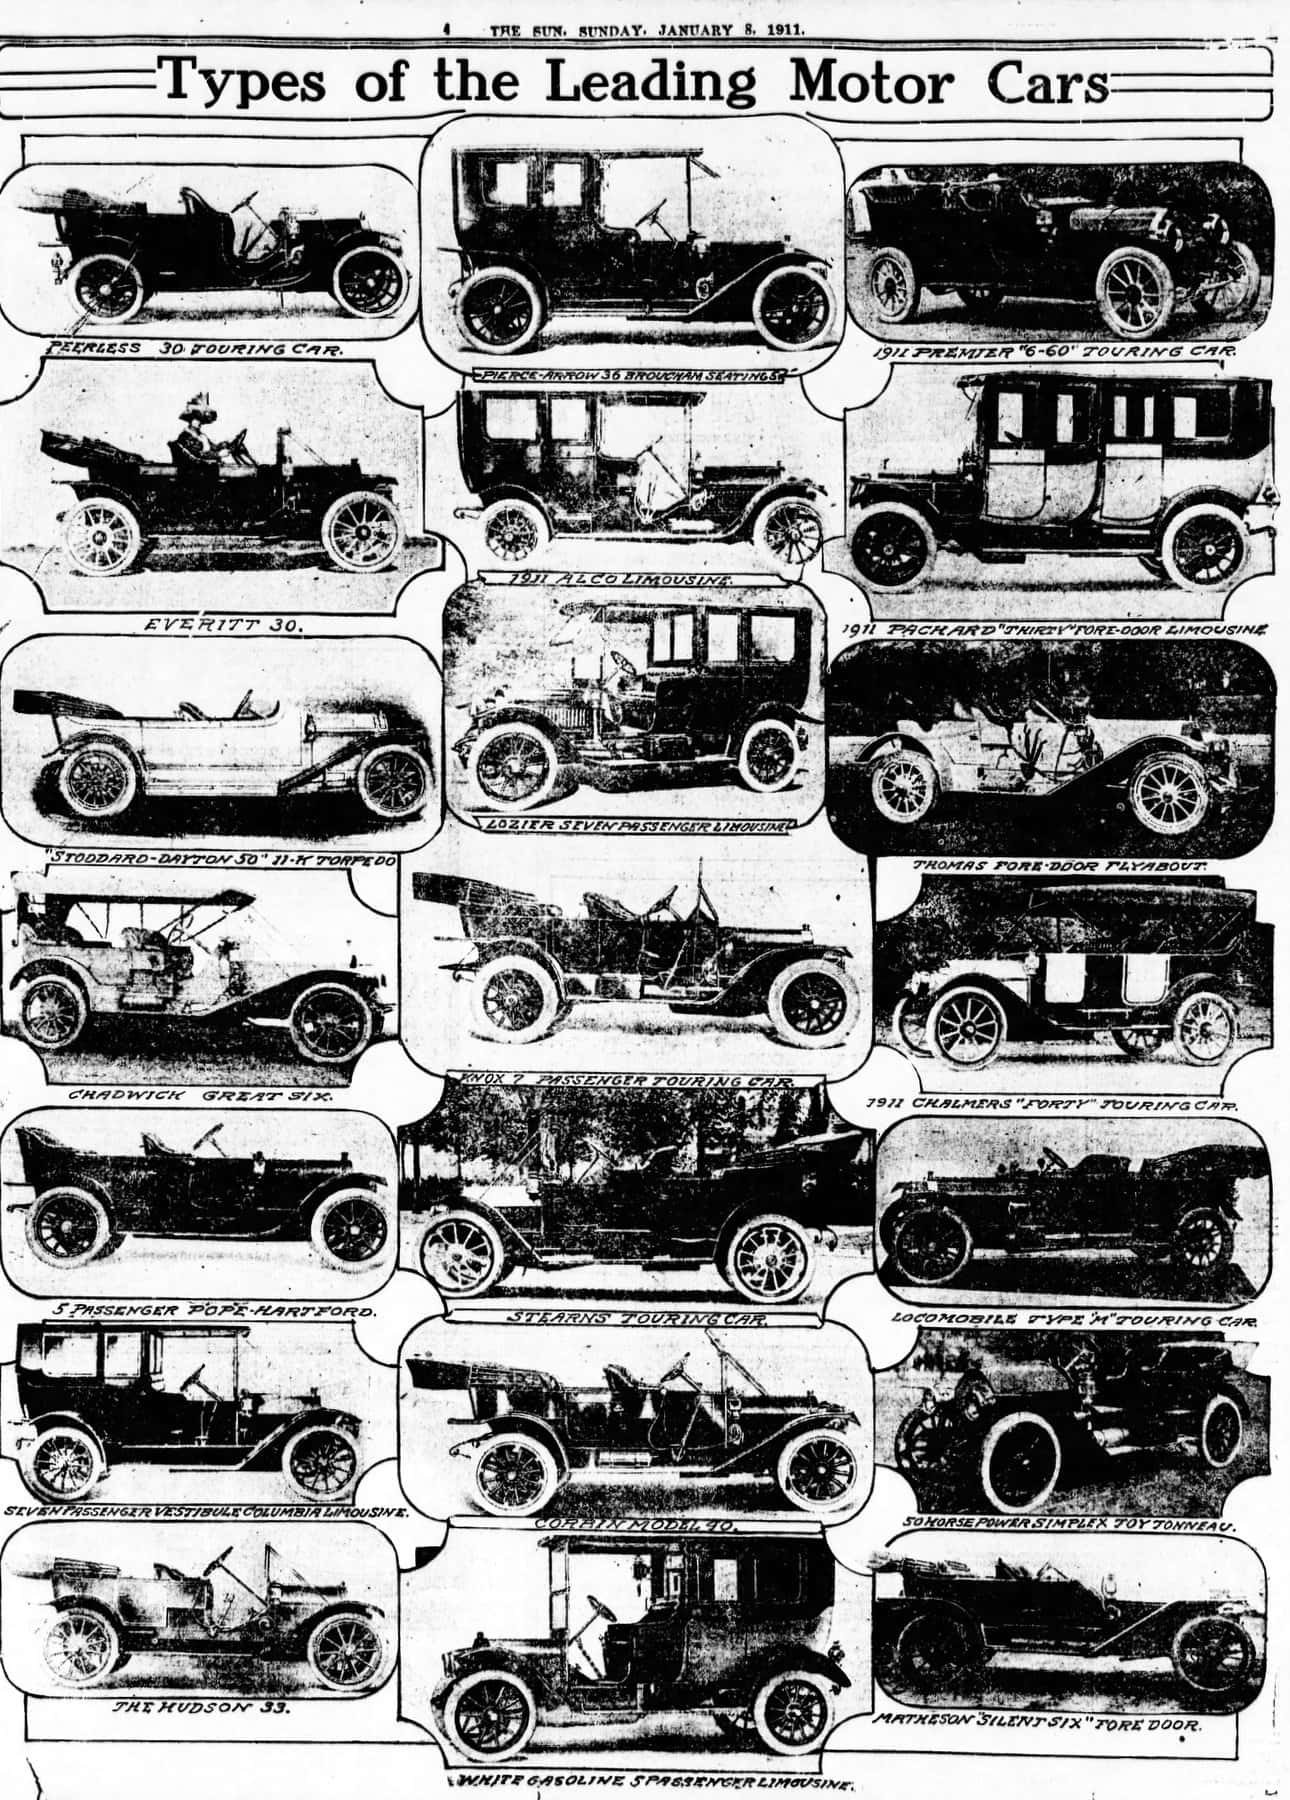 The top automobiles for 1911 - Types of leading motor cars